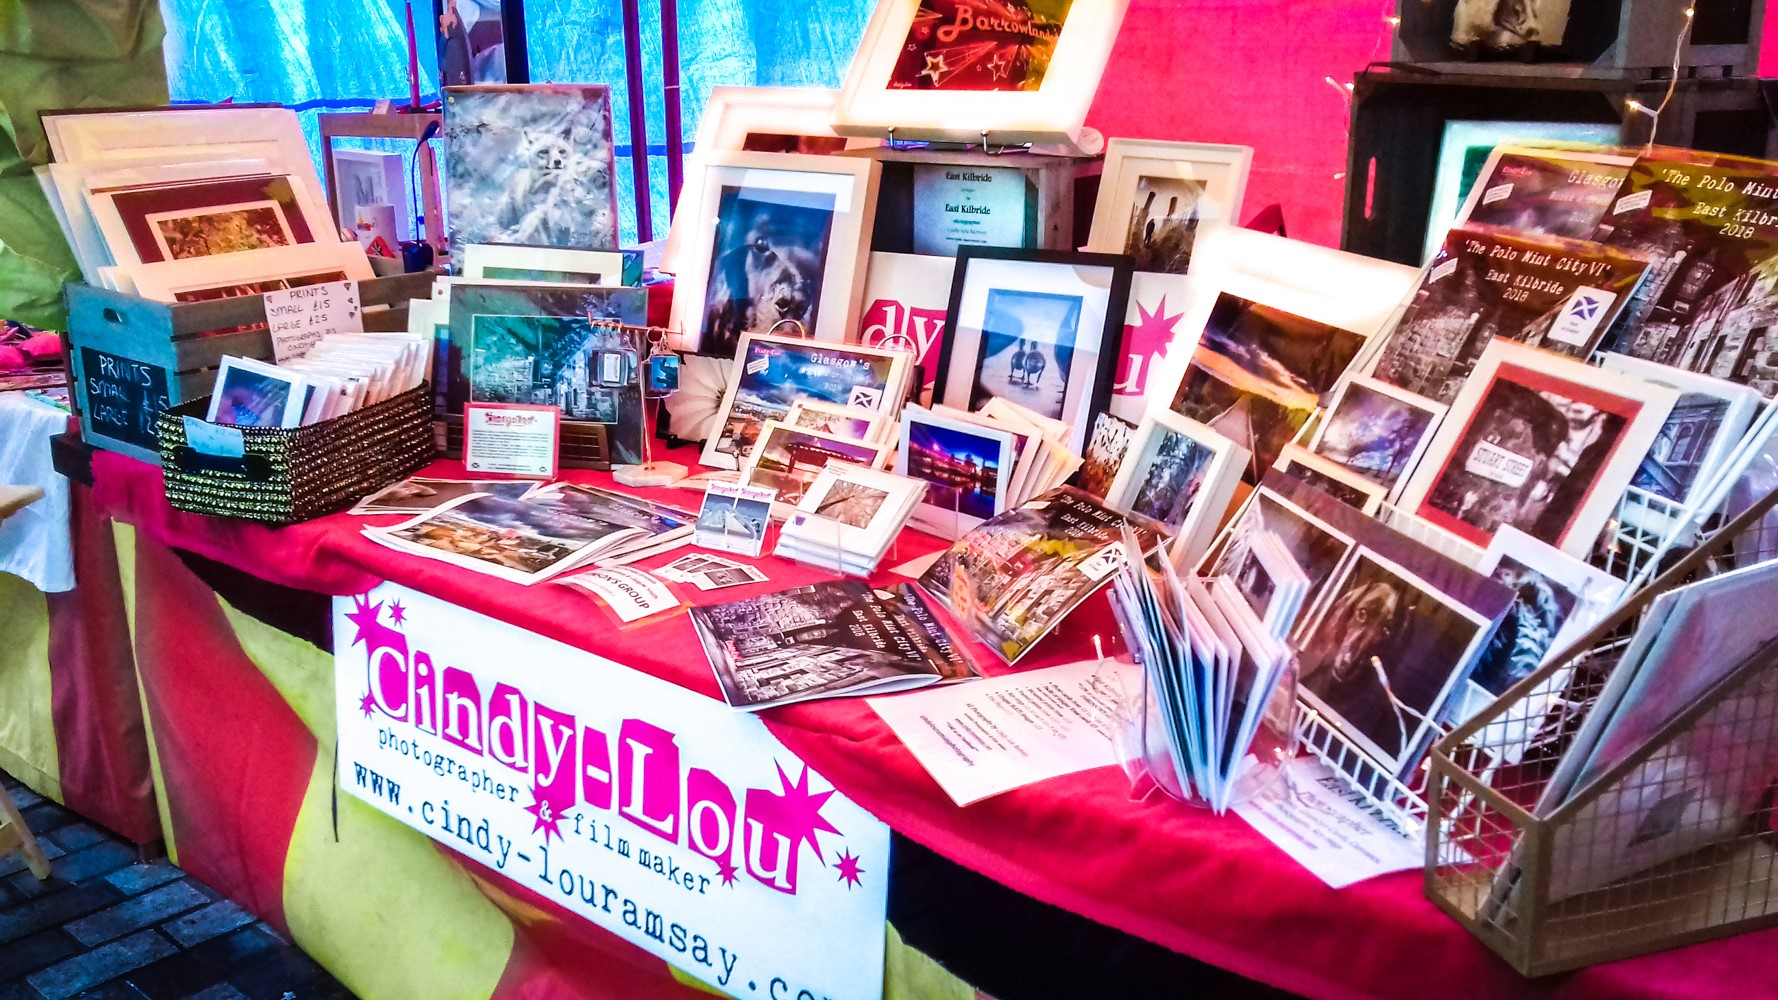 Cindy Lou Ramsay Photography stall